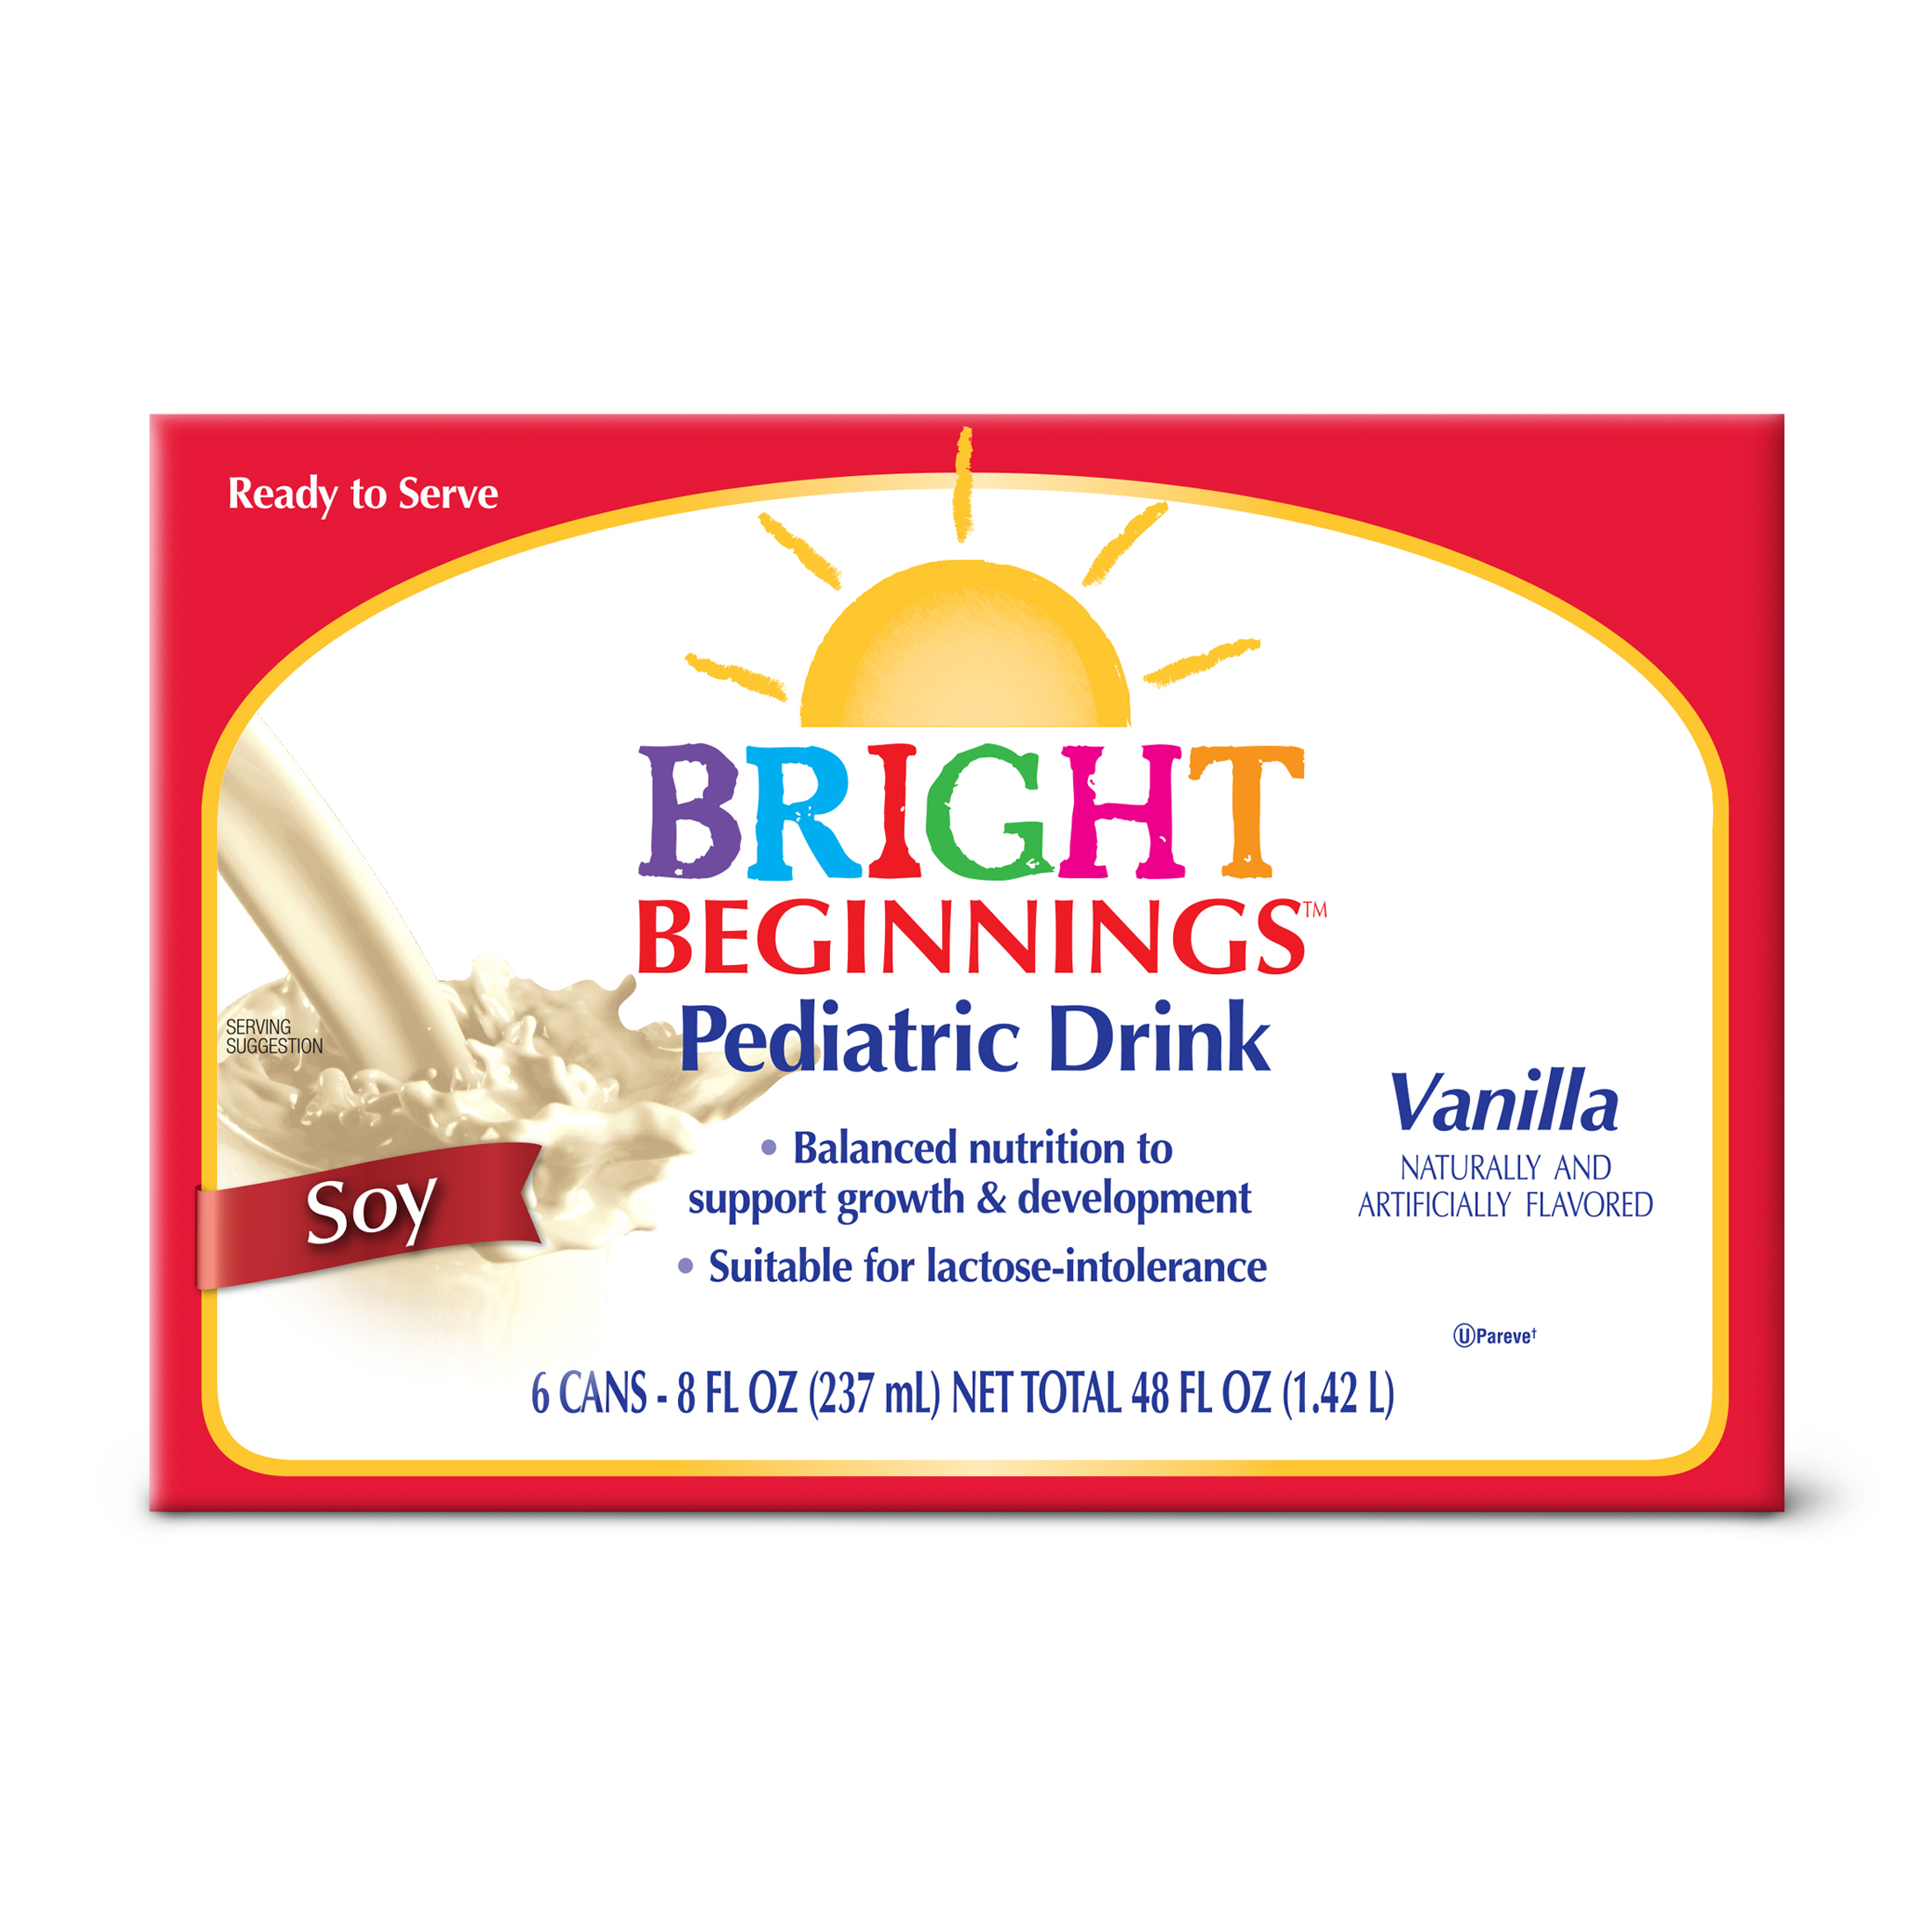 Bright Beginnings Vanilla Soy Pediatric Drink, 8 fl oz, 6 ct